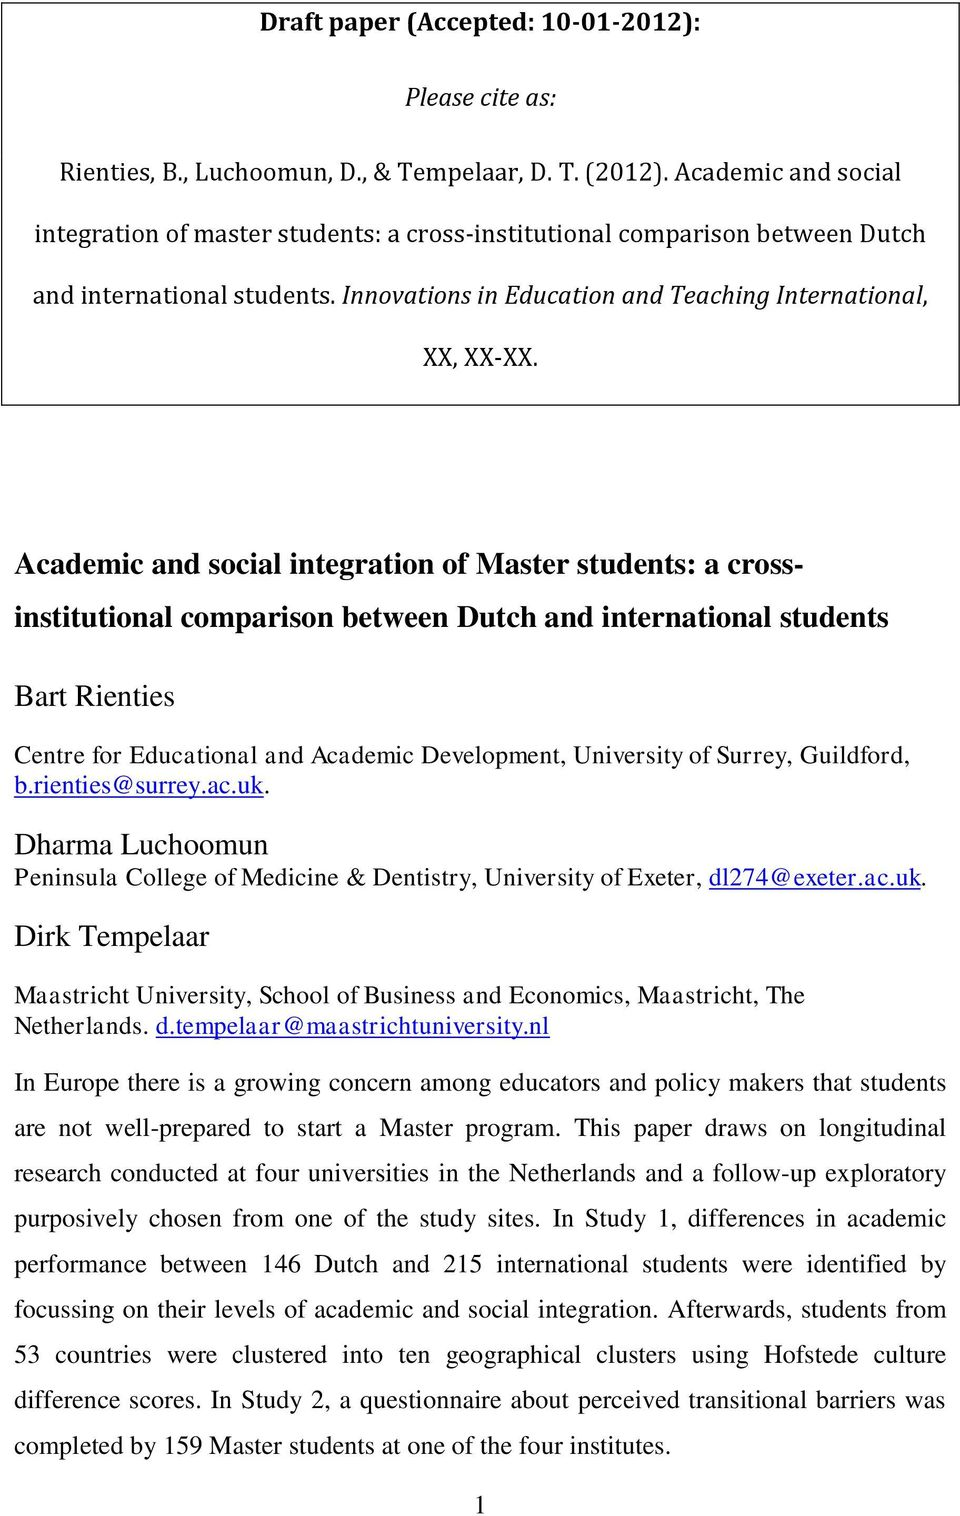 Academic and social integration of Master students: a crossinstitutional comparison between Dutch and international students Bart Rienties Centre for Educational and Academic Development, University